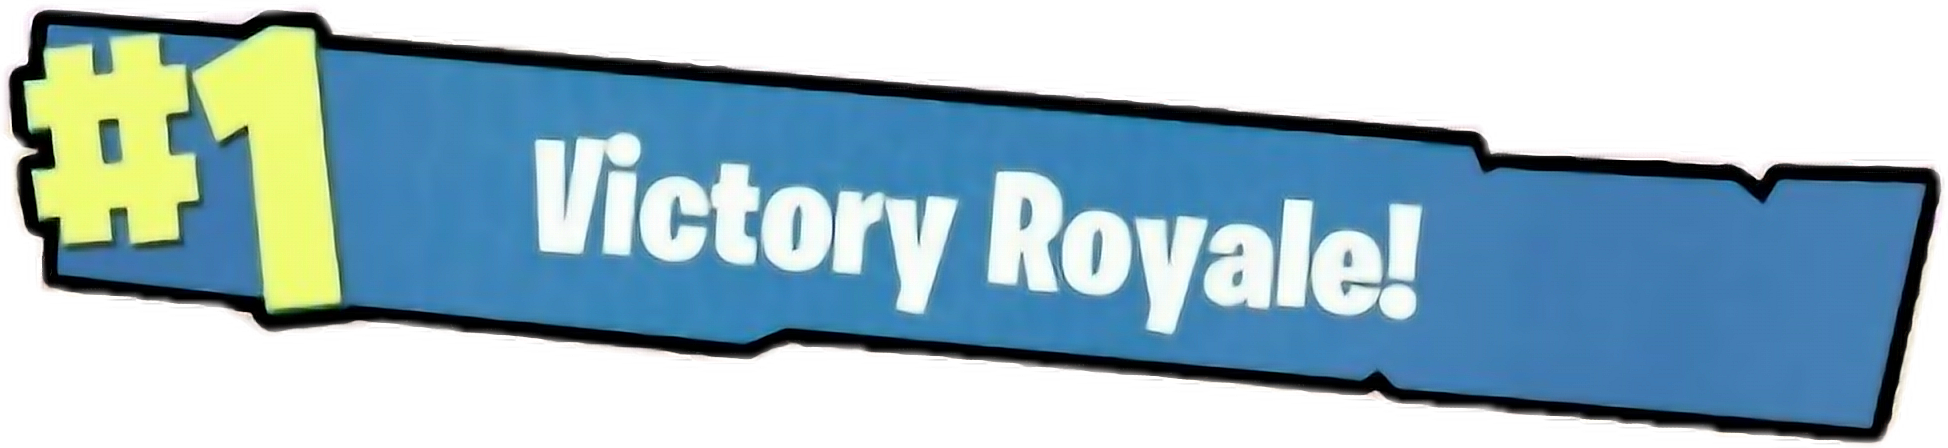 Victory Royale Signage Graphics PNG Clipart image #47387